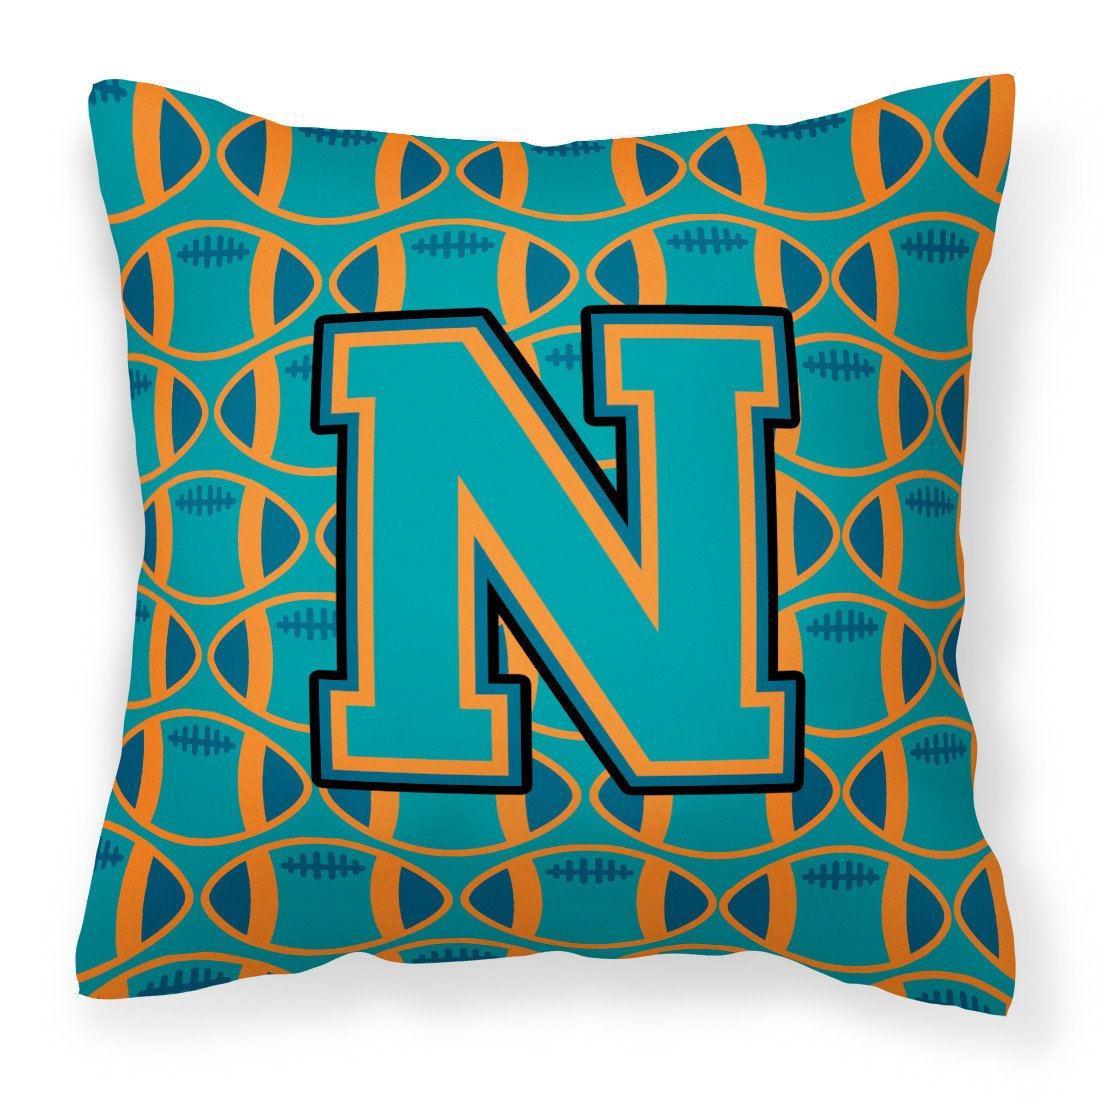 Letter N Football Aqua, Orange and Marine Blue Fabric Decorative Pillow CJ1063-NPW1414 by Caroline's Treasures